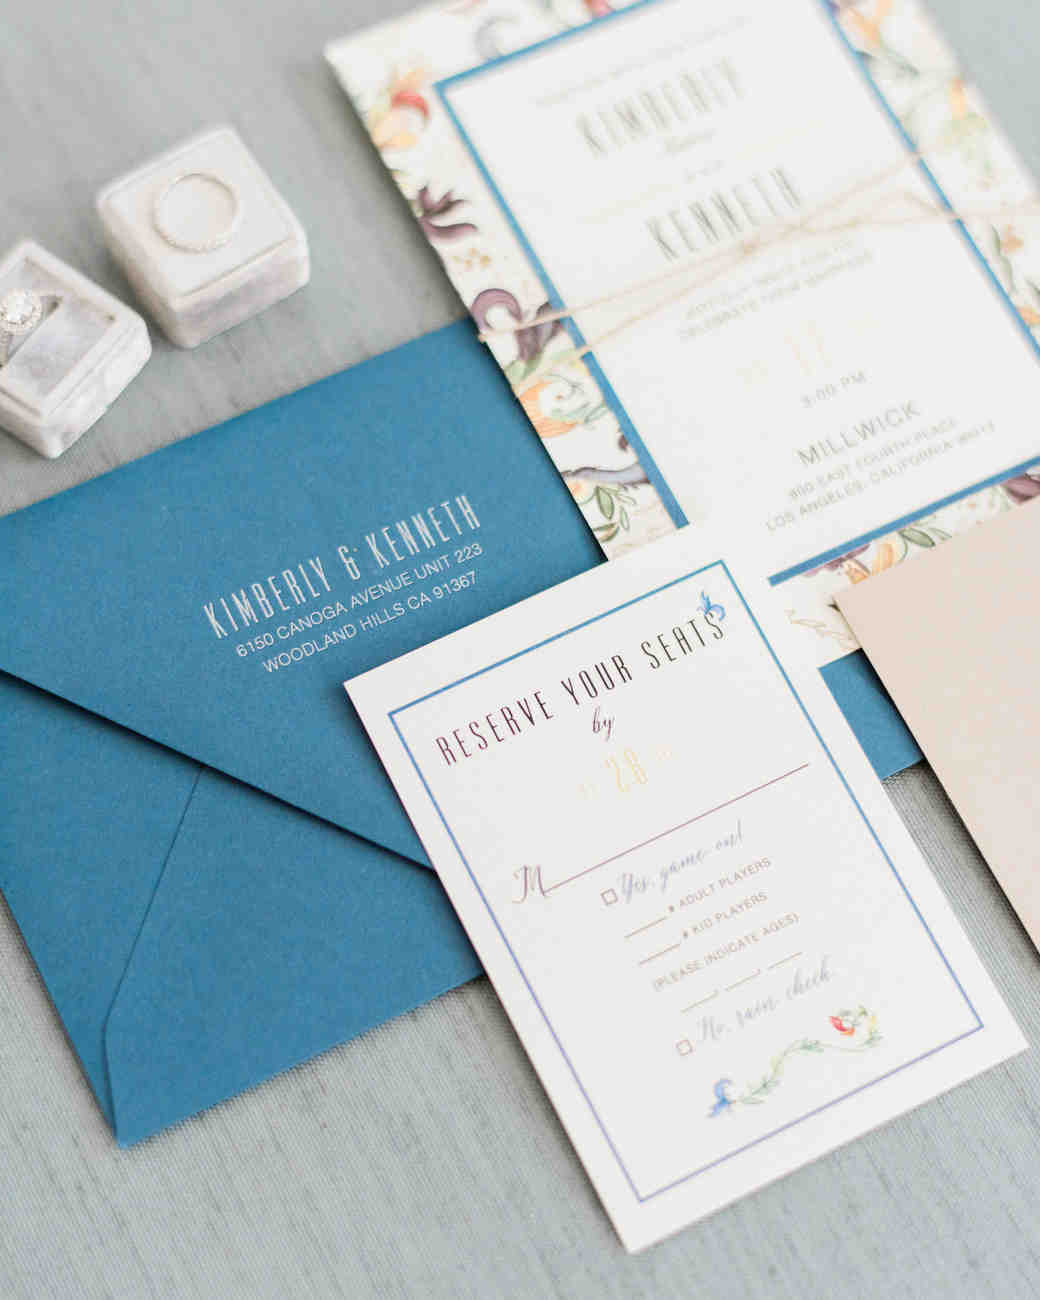 29 Ideas for Unique Wedding Invitations Martha Stewart Weddings